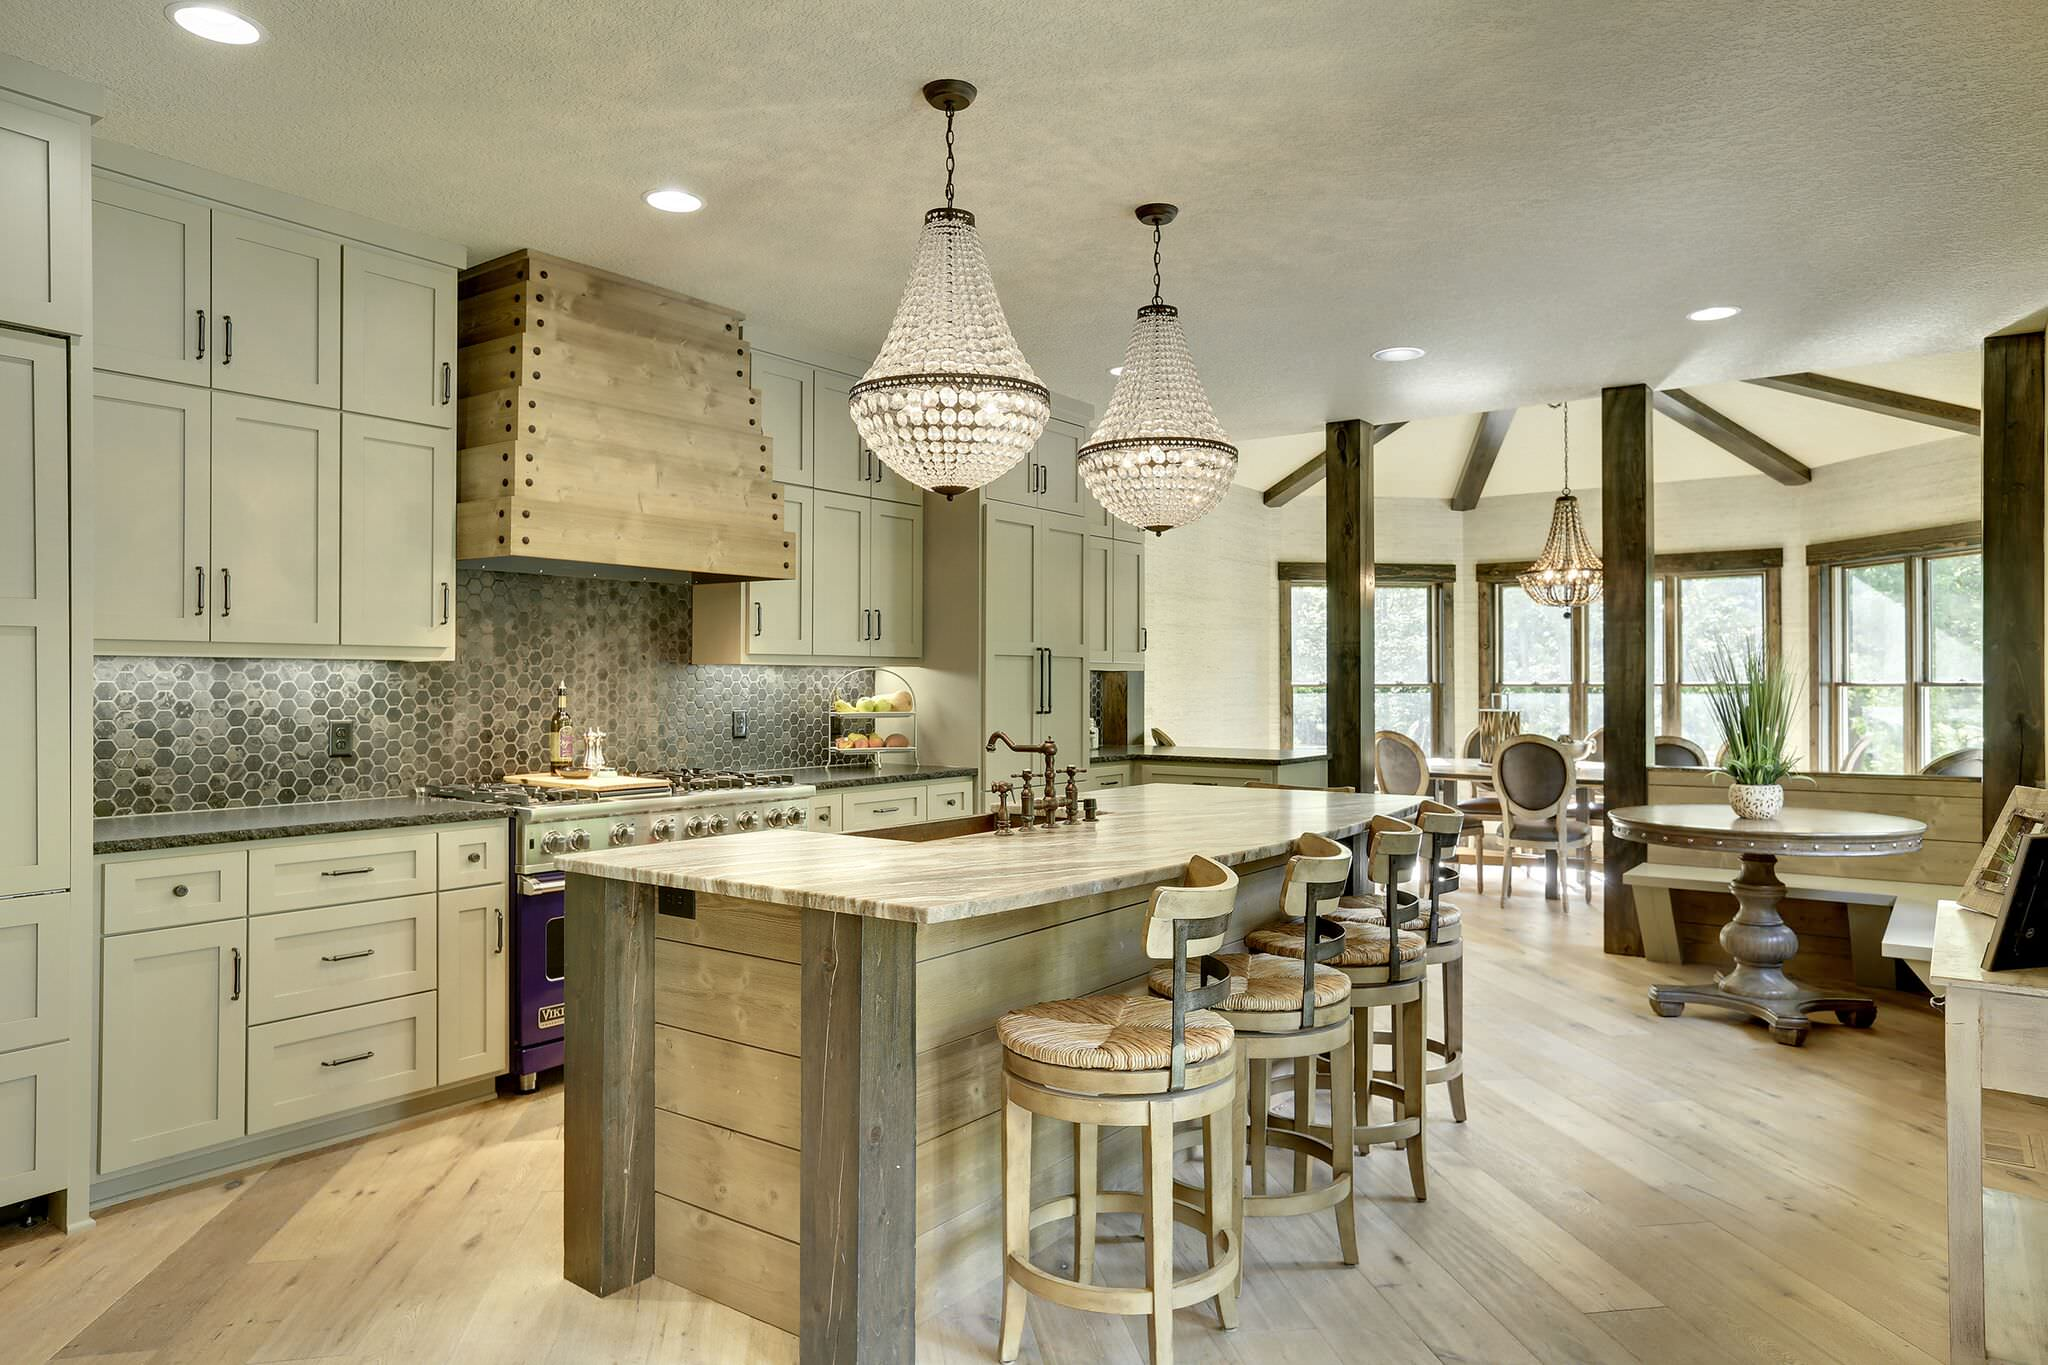 15 inspirational rustic kitchen designs you will adore How do you design a kitchen